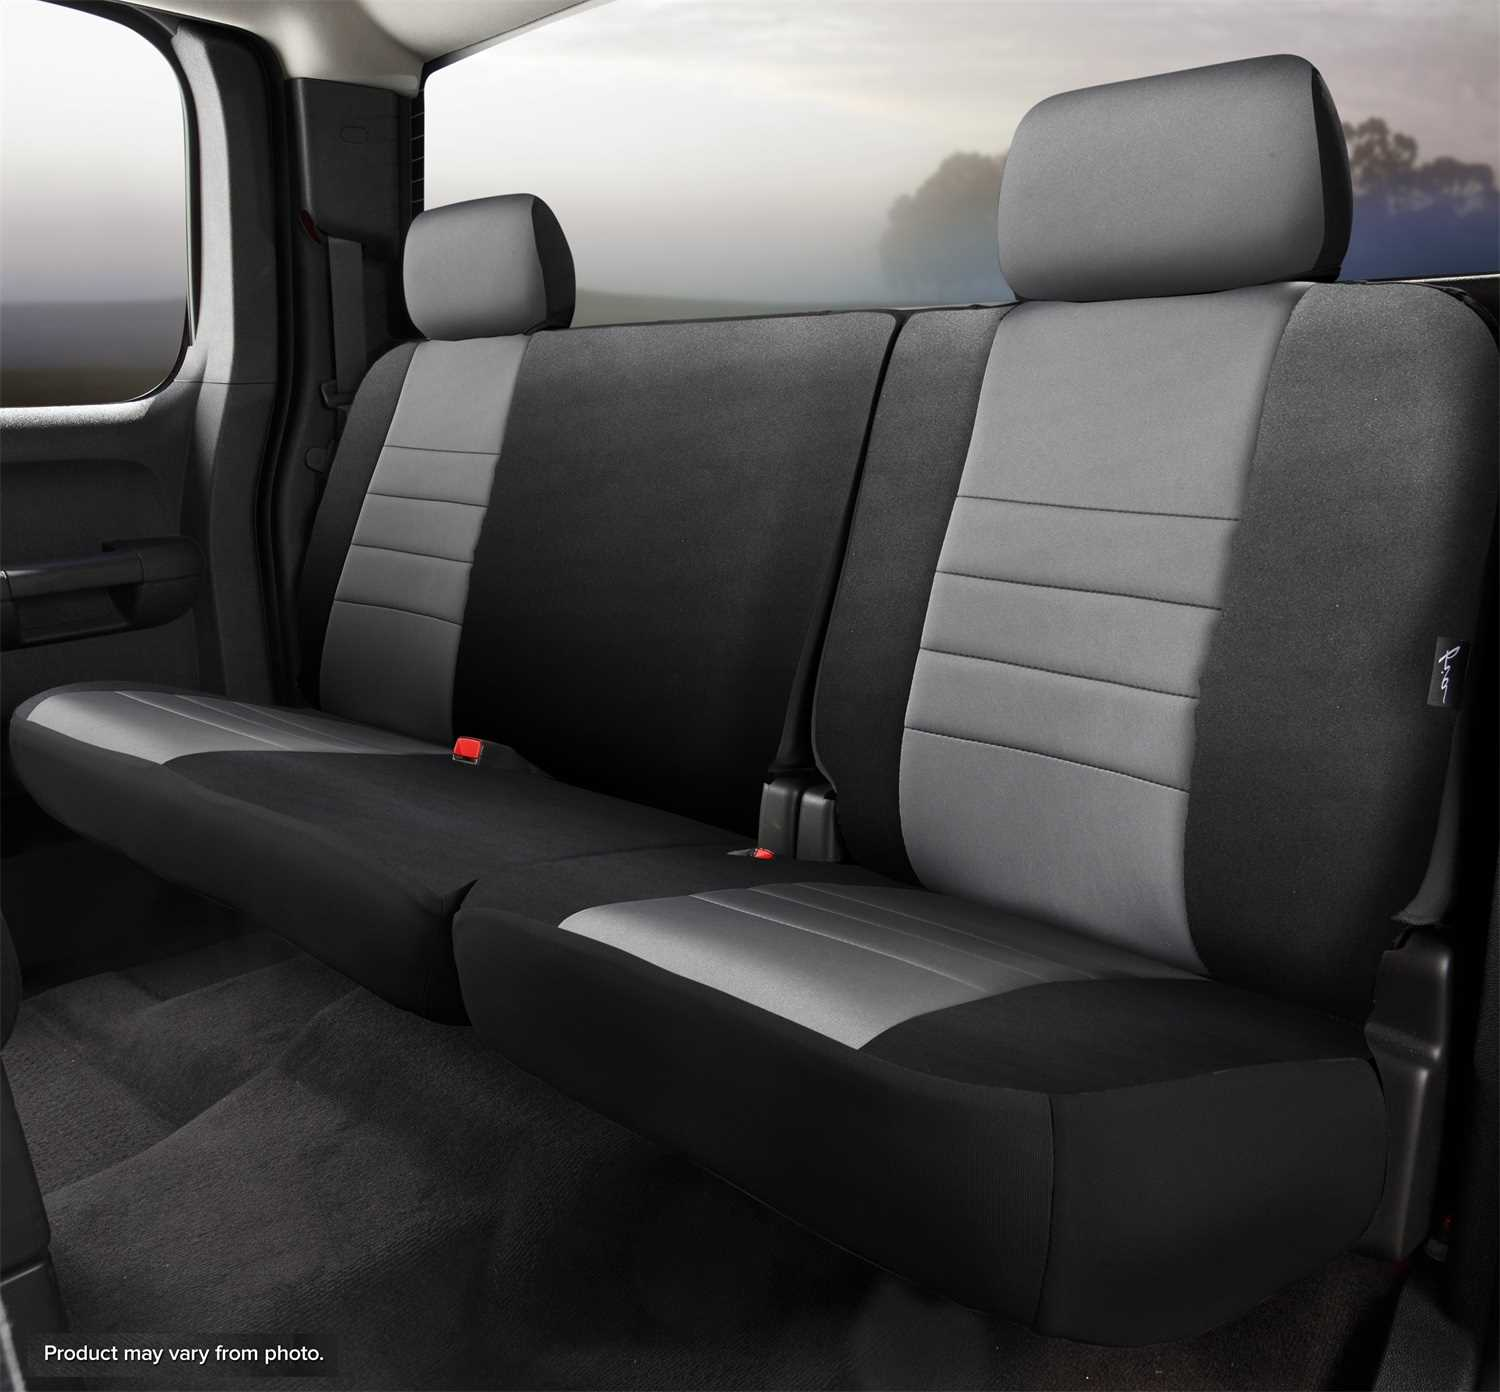 Swell Np92 86 Gray Fia Neo Neoprene Custom Fit Truck Seat Covers Np92 86 Gray Unemploymentrelief Wooden Chair Designs For Living Room Unemploymentrelieforg